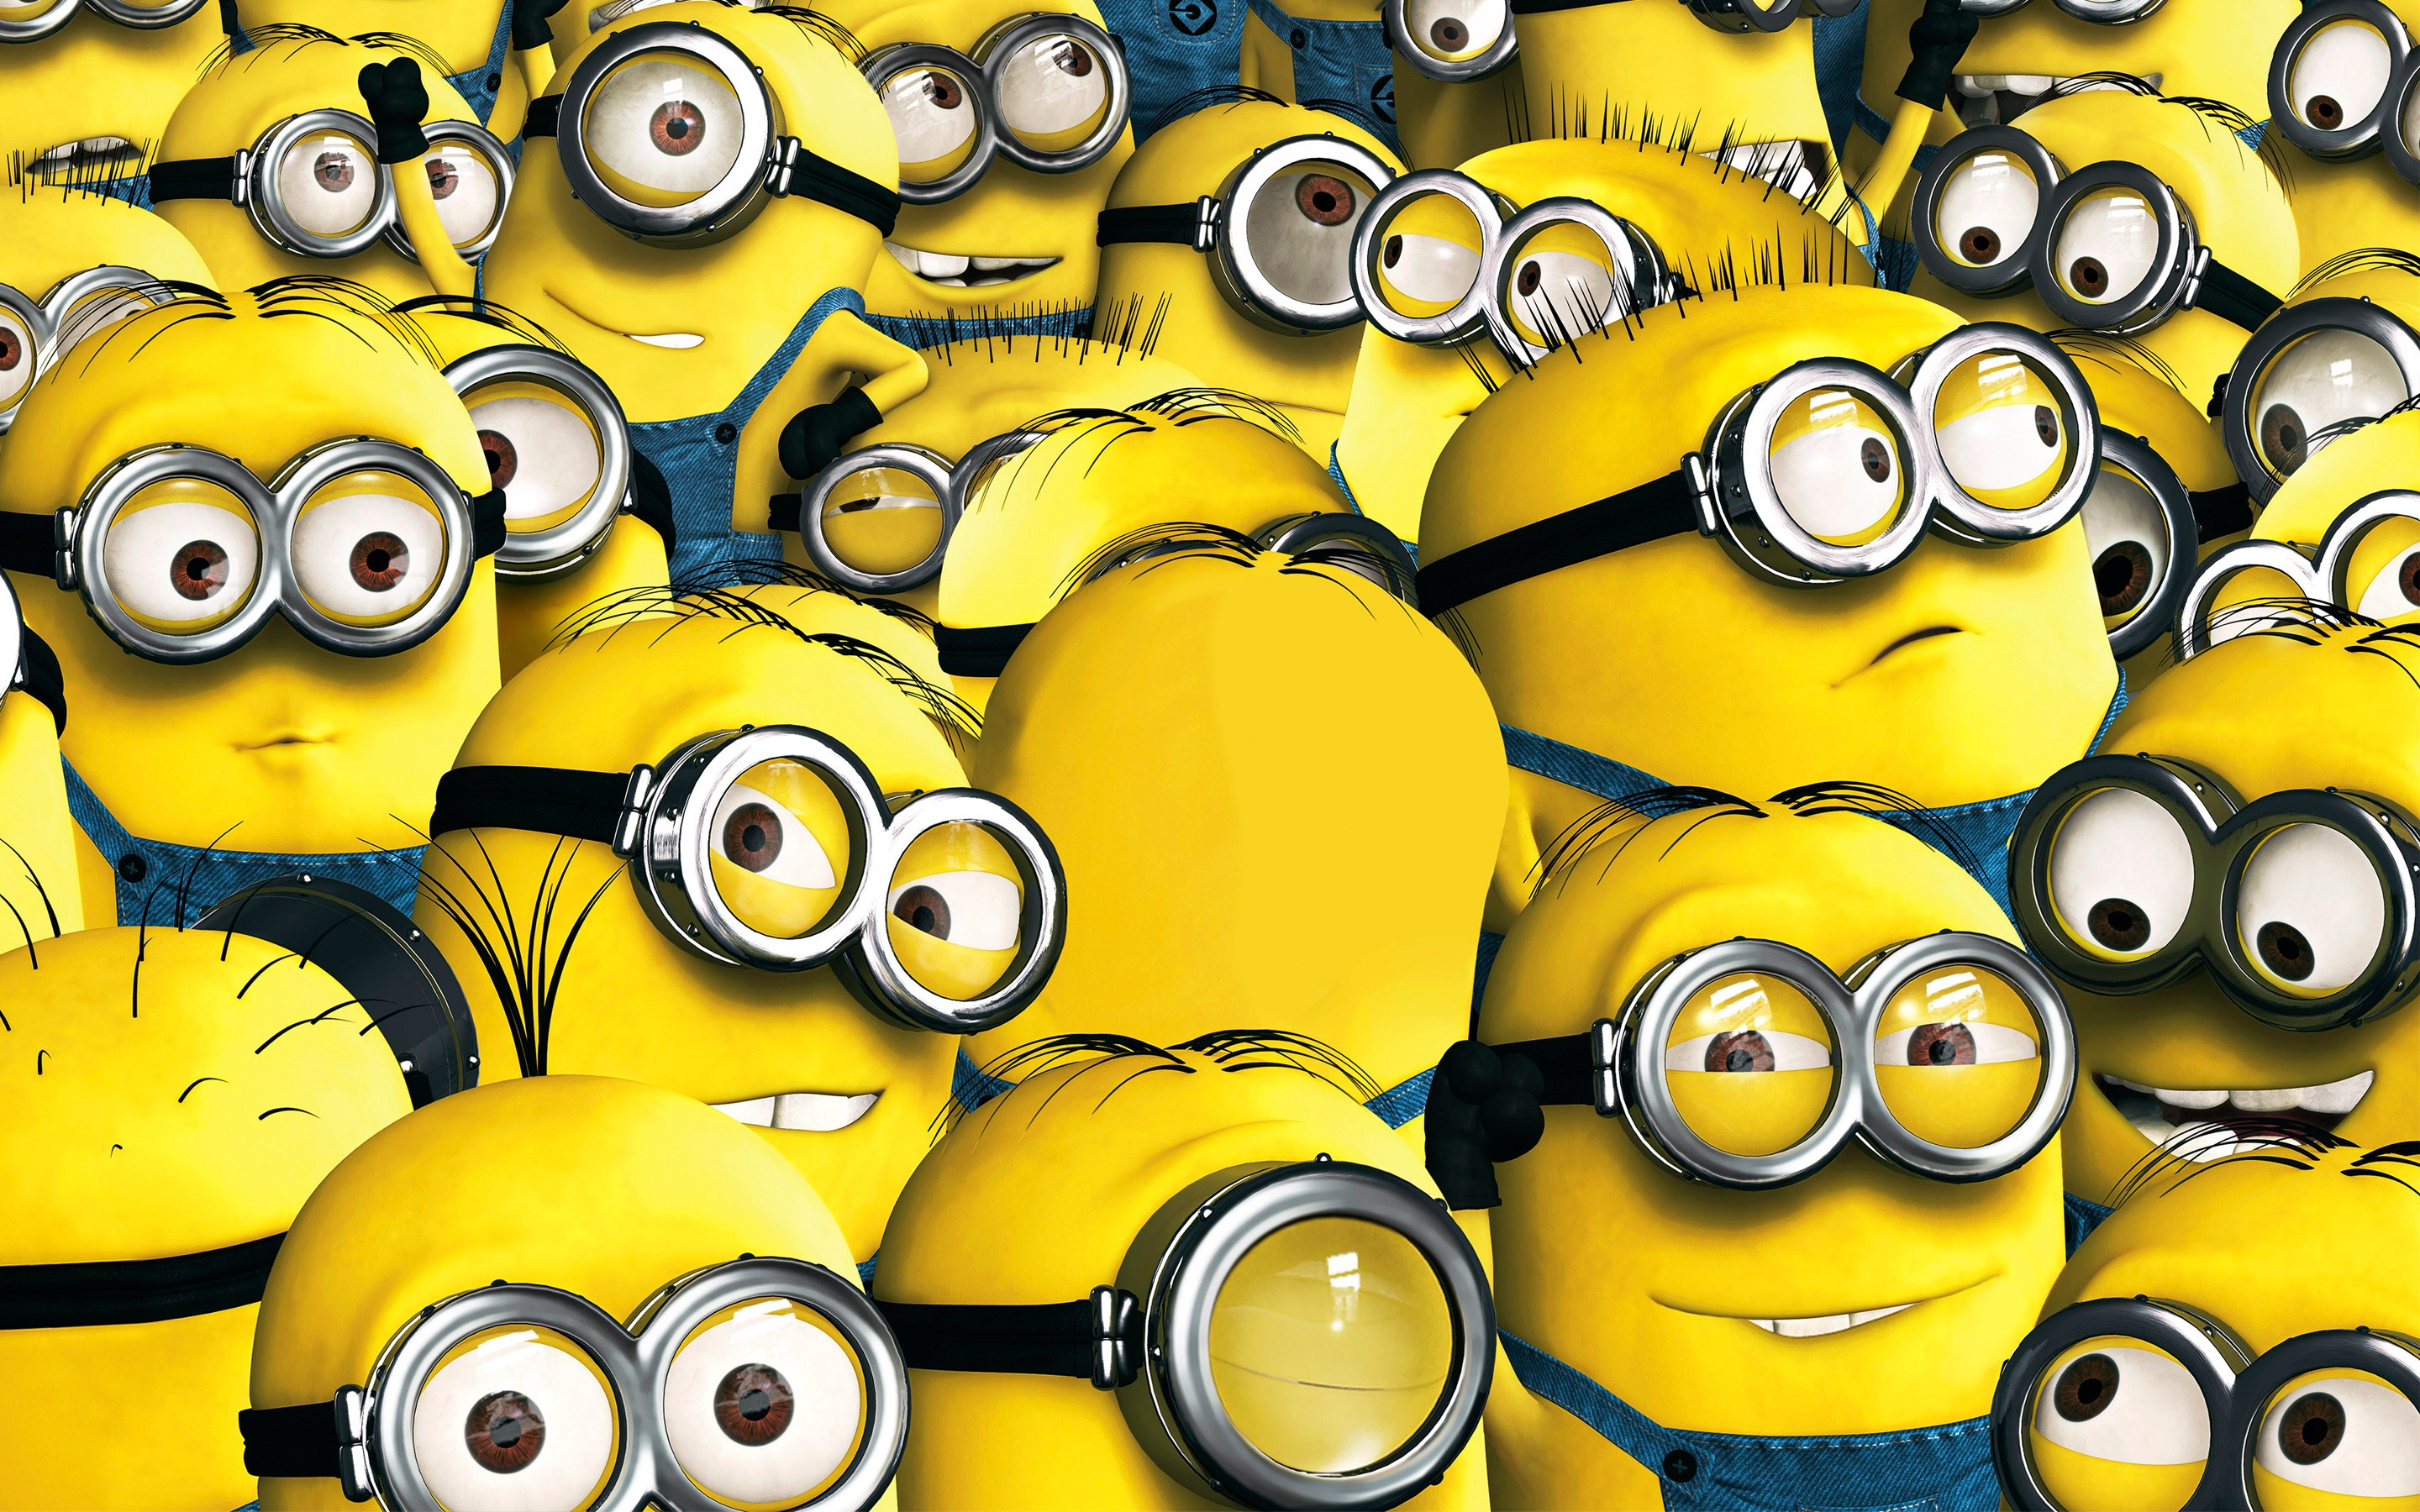 despicable me minions, hd movies, 4k wallpapers, images, backgrounds